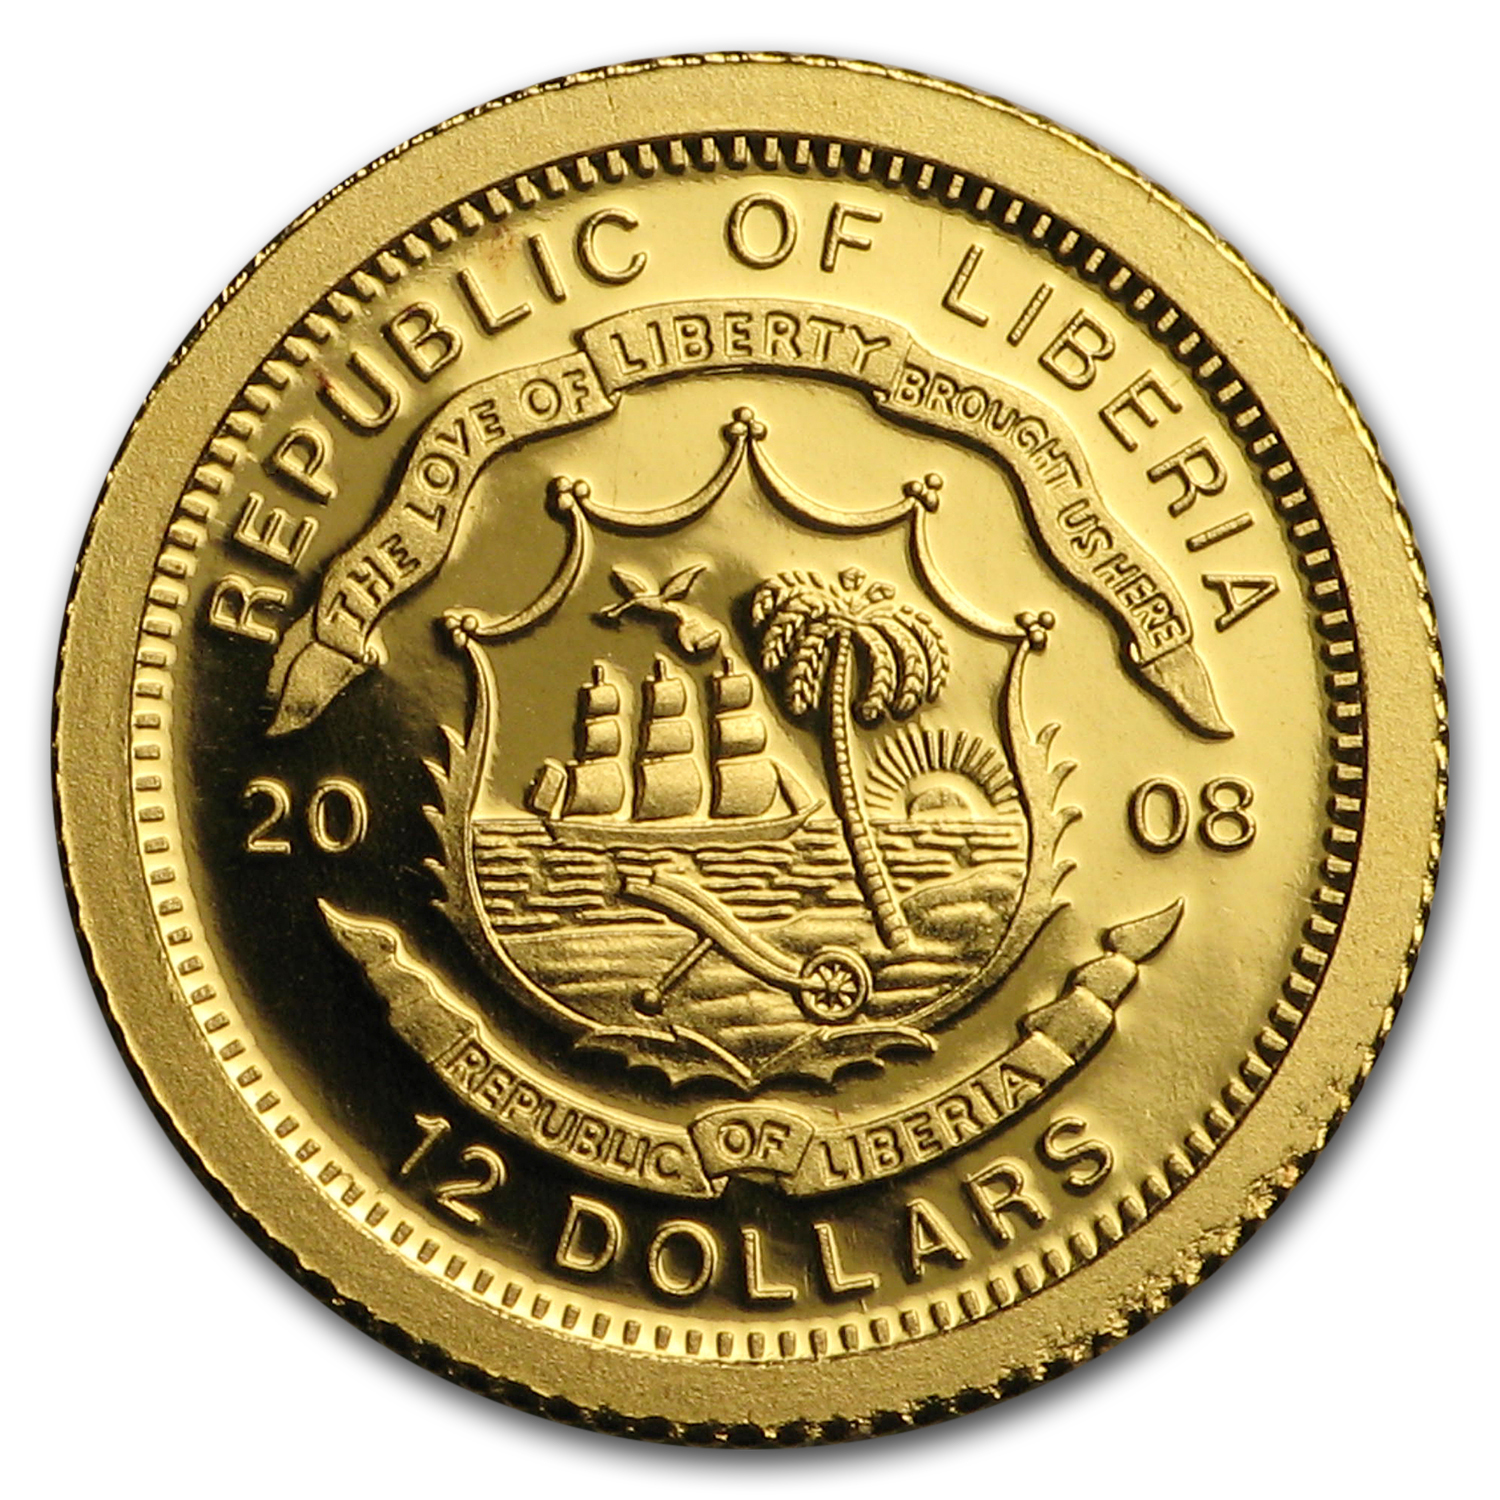 2008 Liberia 26-Coin Proof Gold $12 European Collection